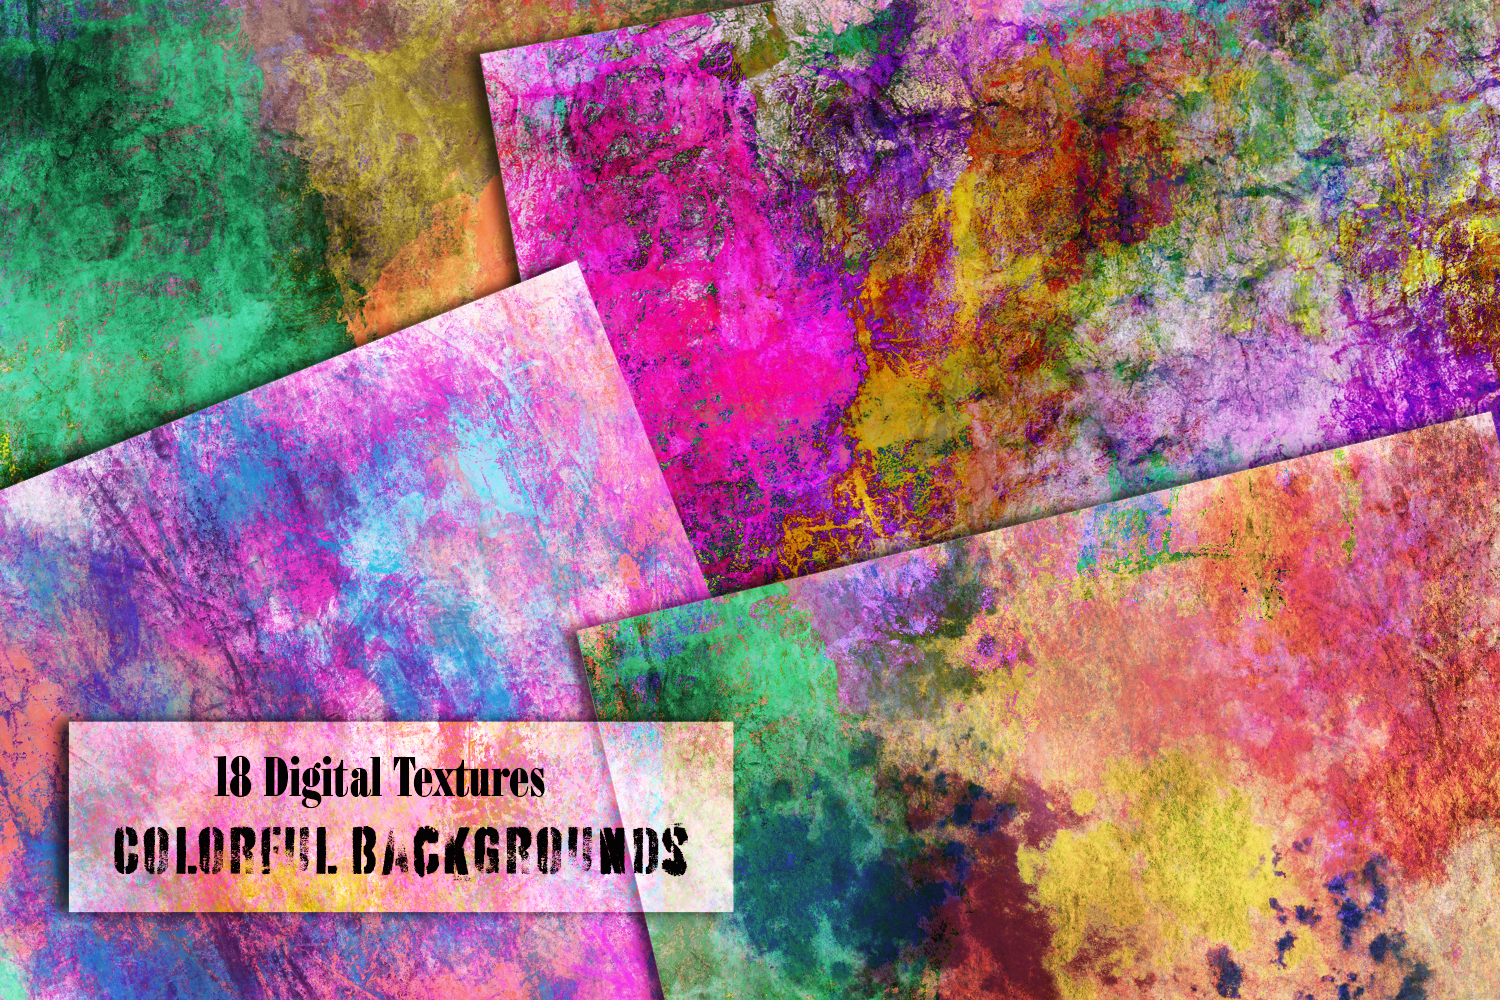 Colorful splash backgrounds. Grungy Digital textured papers example image 2